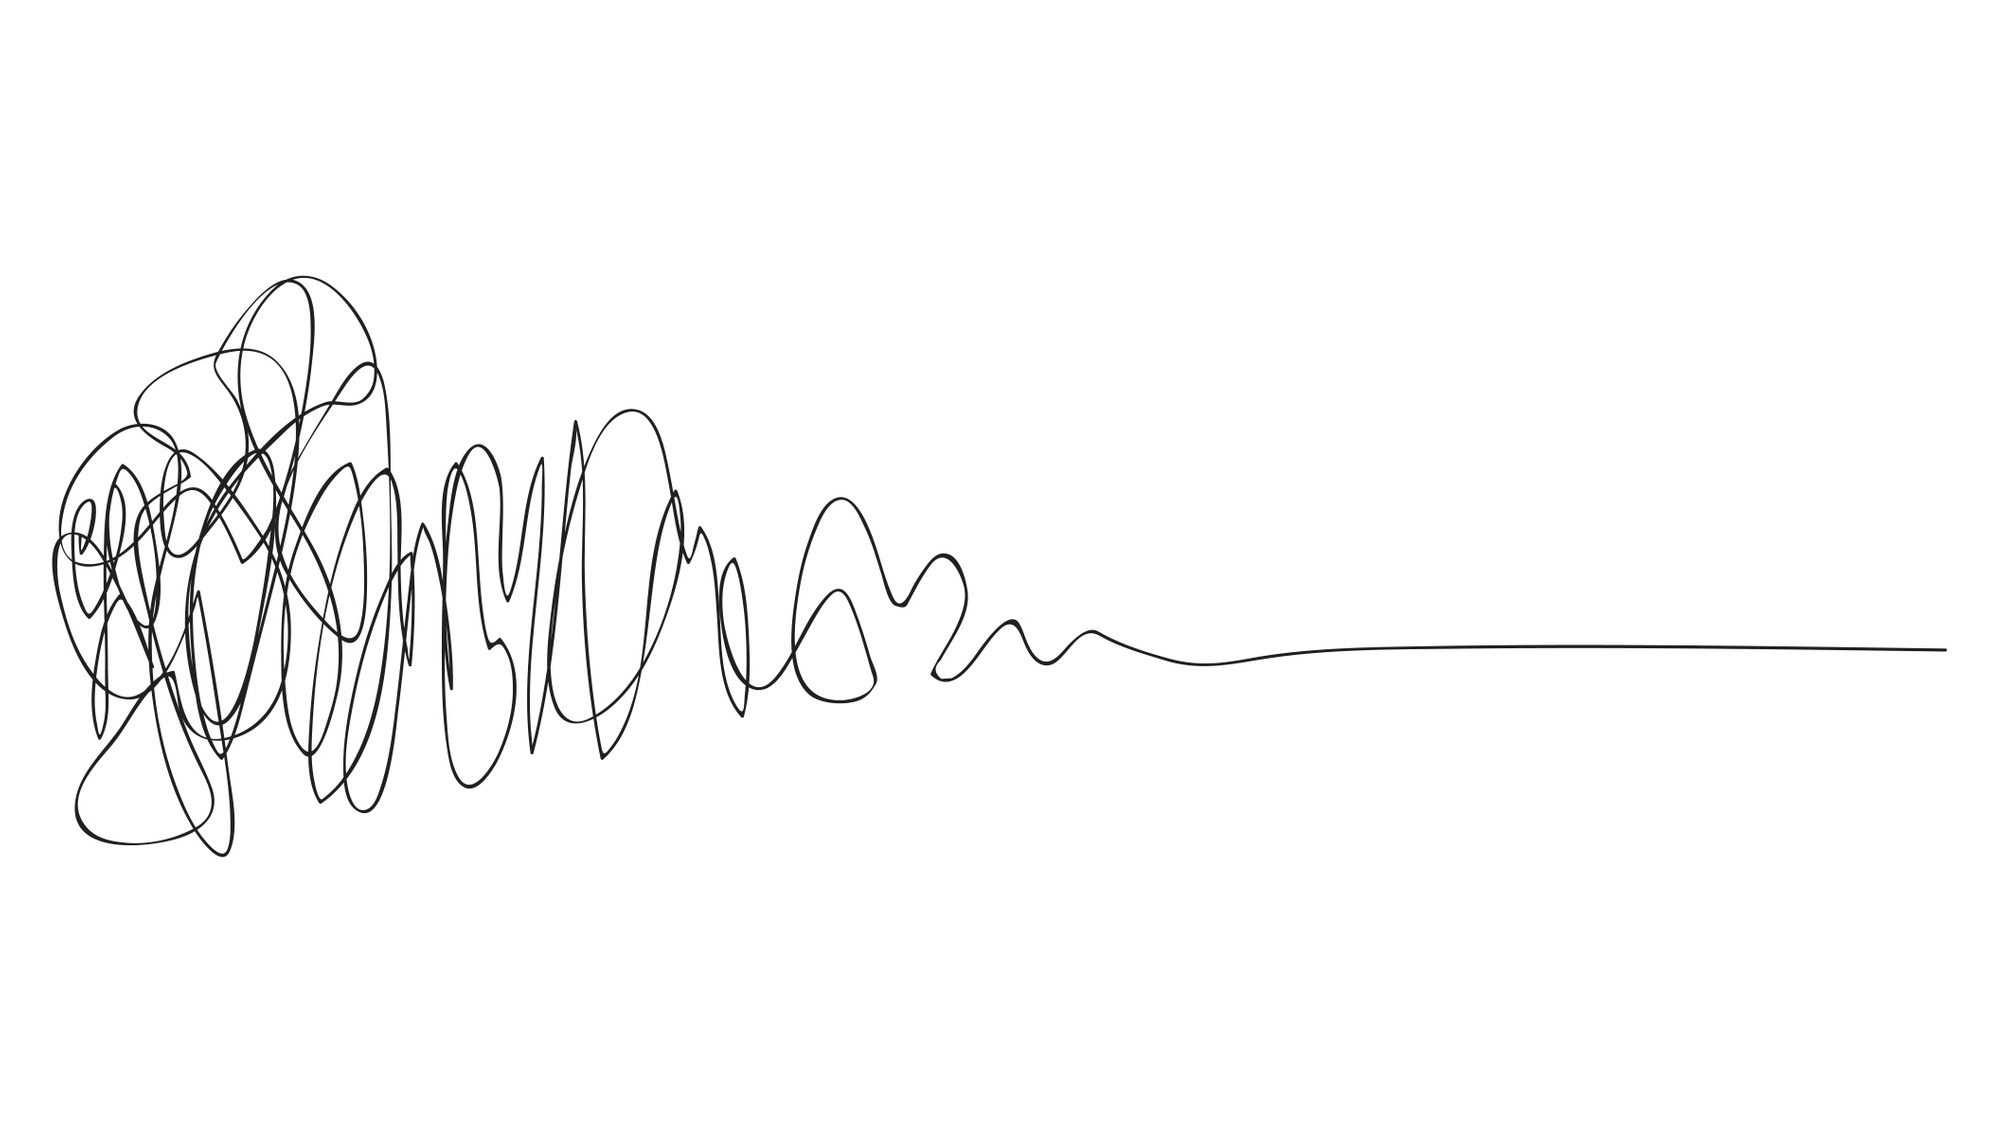 the design squiggle by Damien Newman